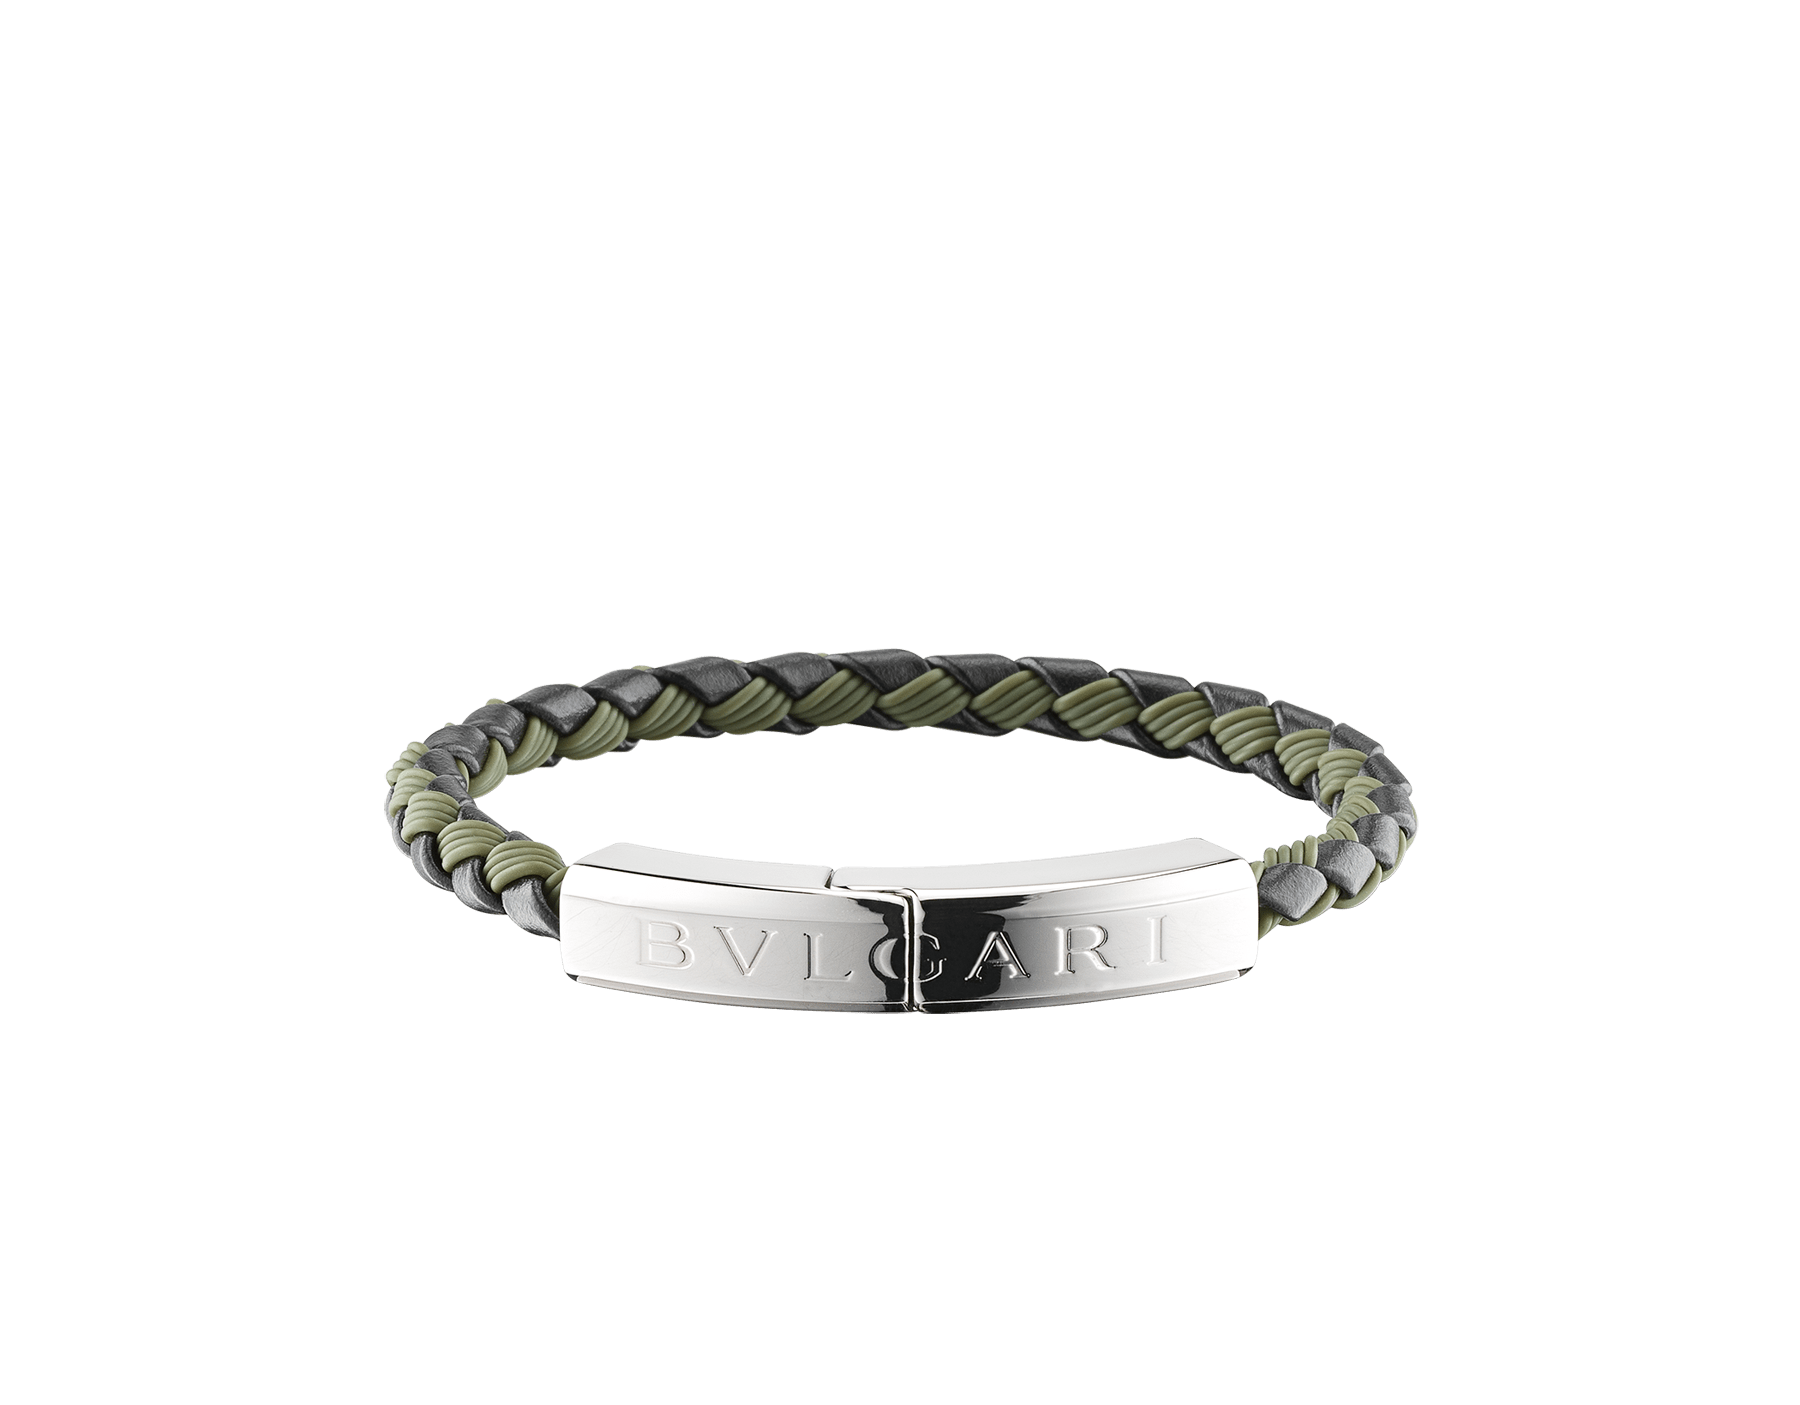 """""""BVLGARI BVLGARI"""" bracelet in black calf leather and mimetic jade rubber with a silver plated closure with Bvlgari logo. LogoPlate-CLR-BMJ image 1"""